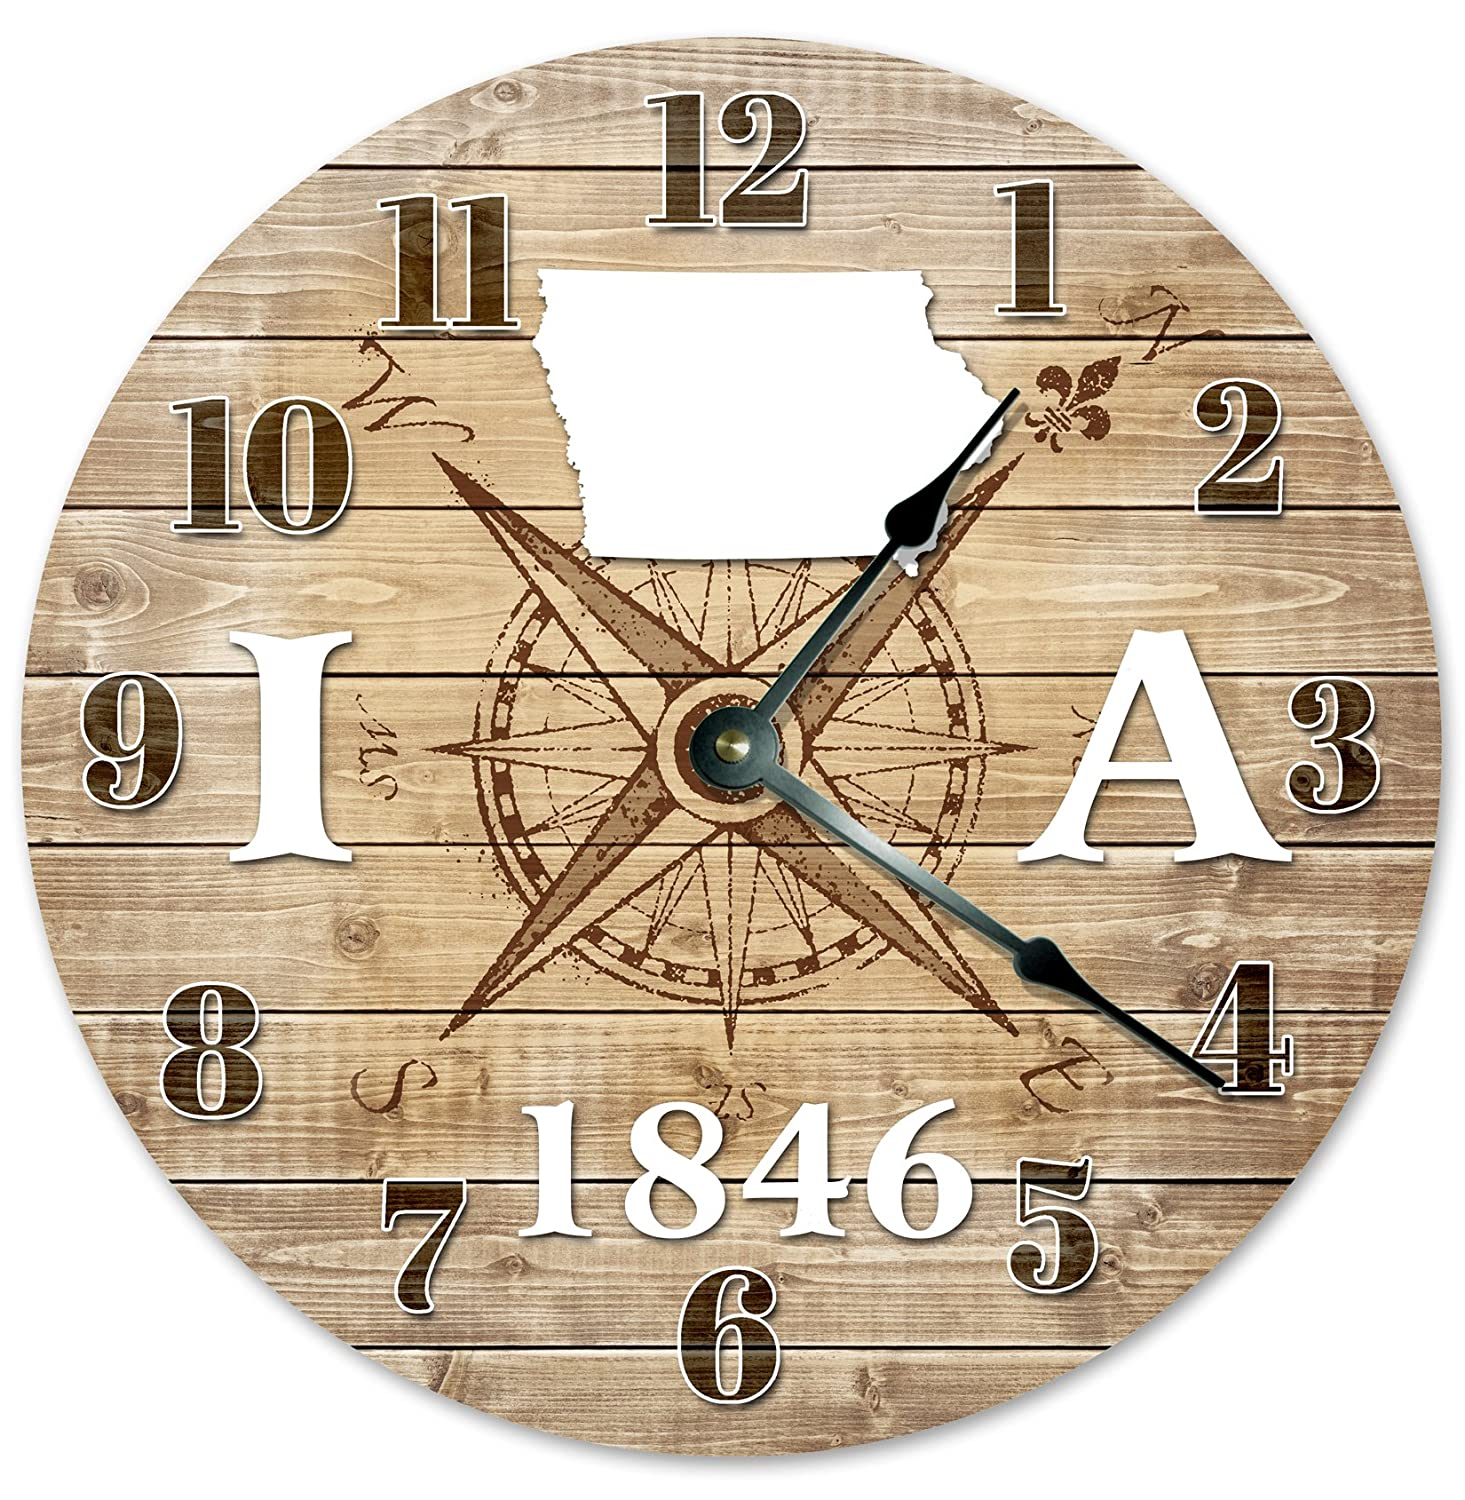 IOWA CLOCK Established in 1846 Huge 15.5 to 16 COMPASS MAP RUSTIC STATE CLOCK Printed Wood Image